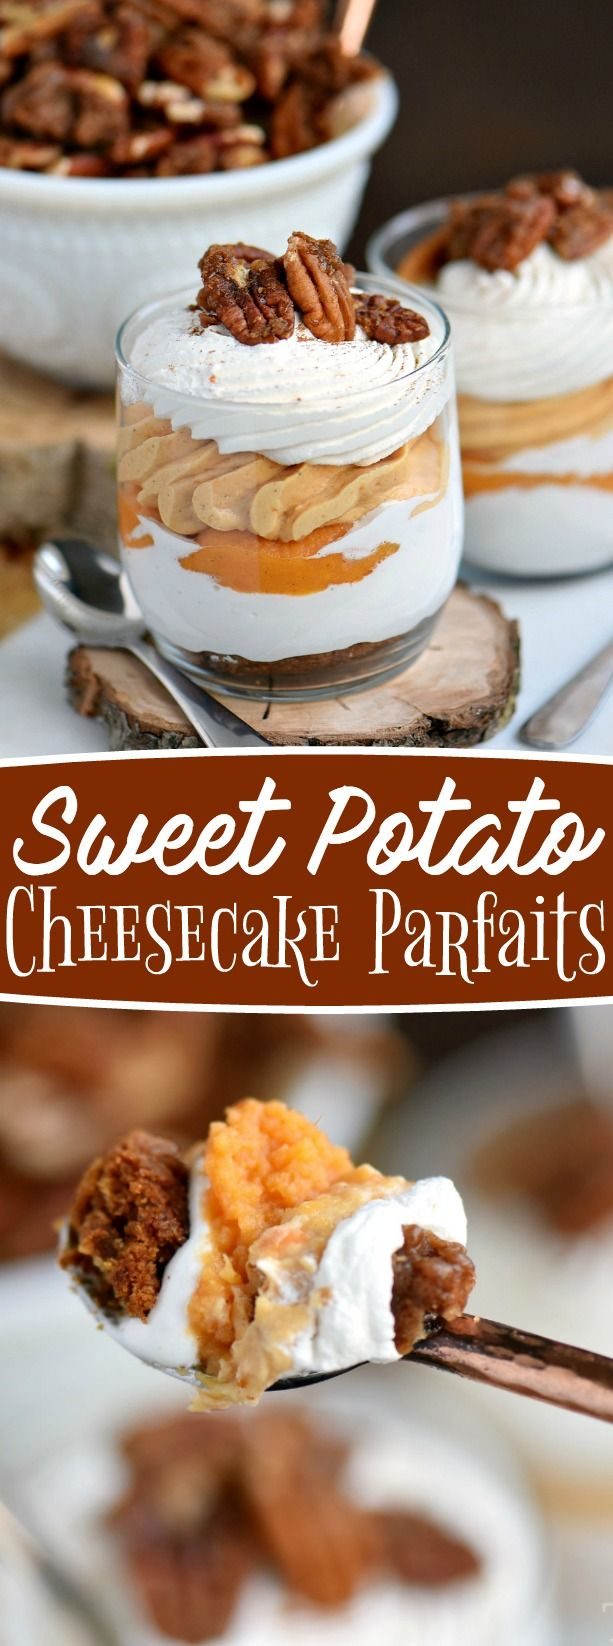 The best dessert I've had all year - Sweet Potato Cheesecake Parfaits! Layers of gingersnap cookies, marshmallow, sweet potato cheesecake and whipped cream all topped with candied pecans and a dash of cinnamon! Delight in every bite! // Mom On Timeout #ad